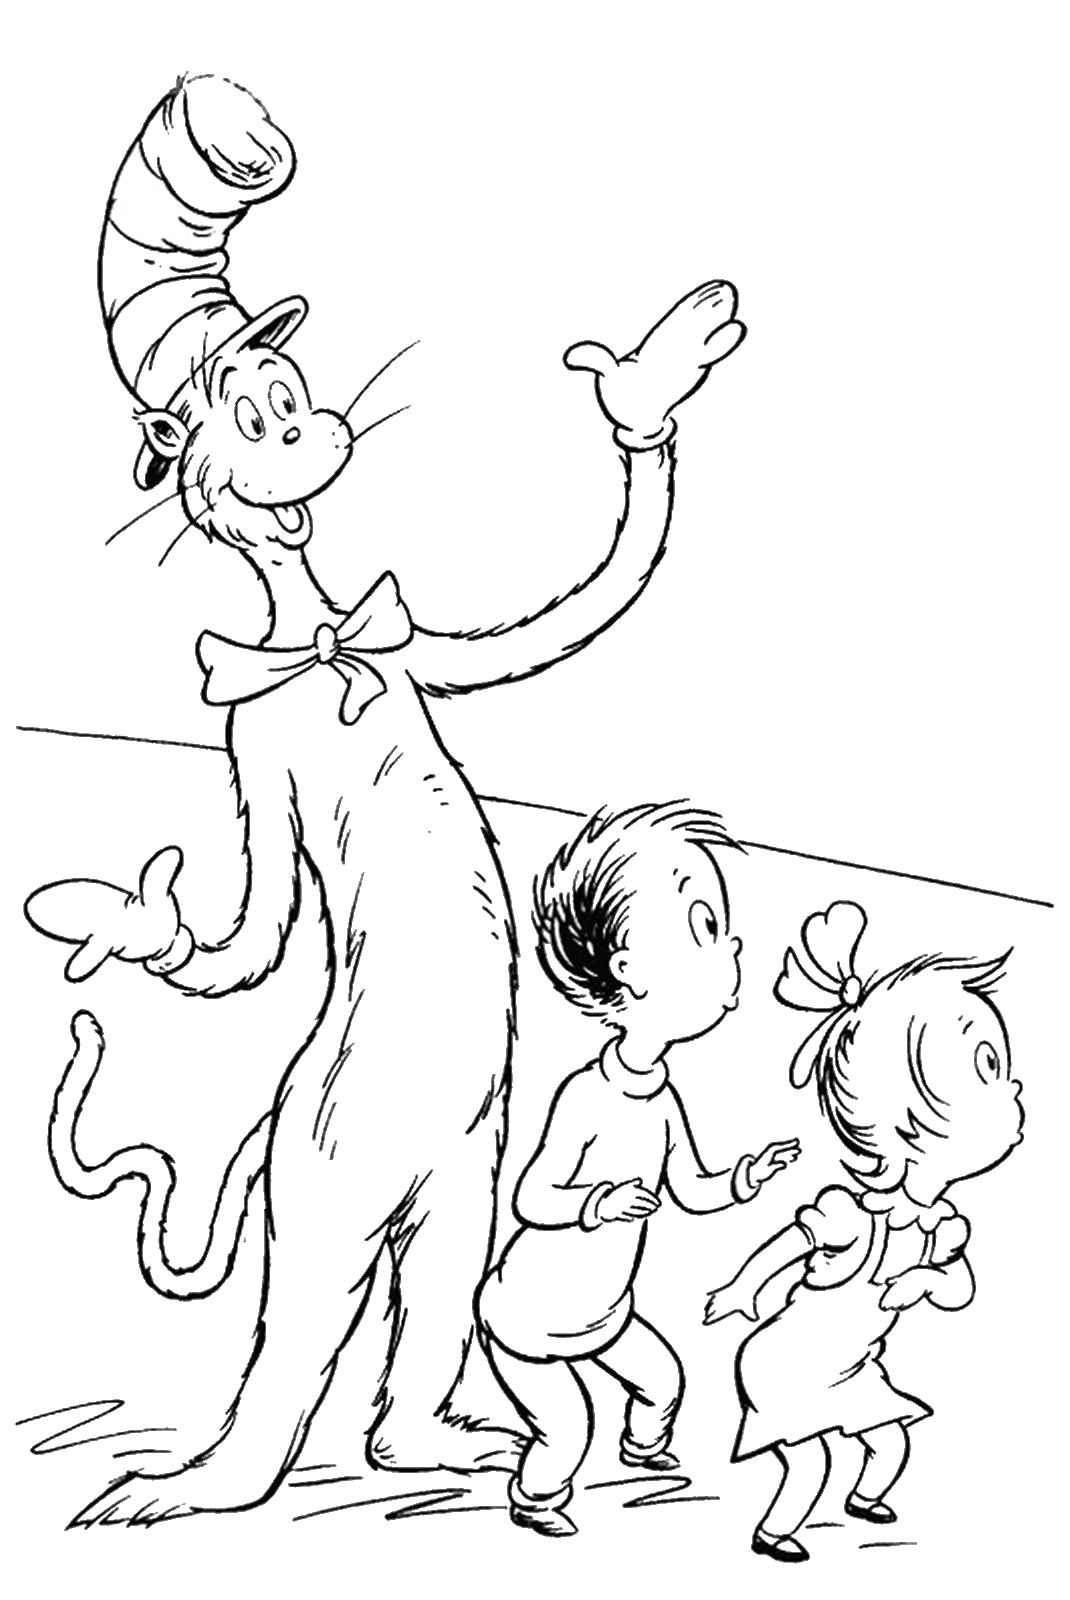 Cat In the Hat Free Printable Coloring Pages Cat In the Hat Coloring Pages